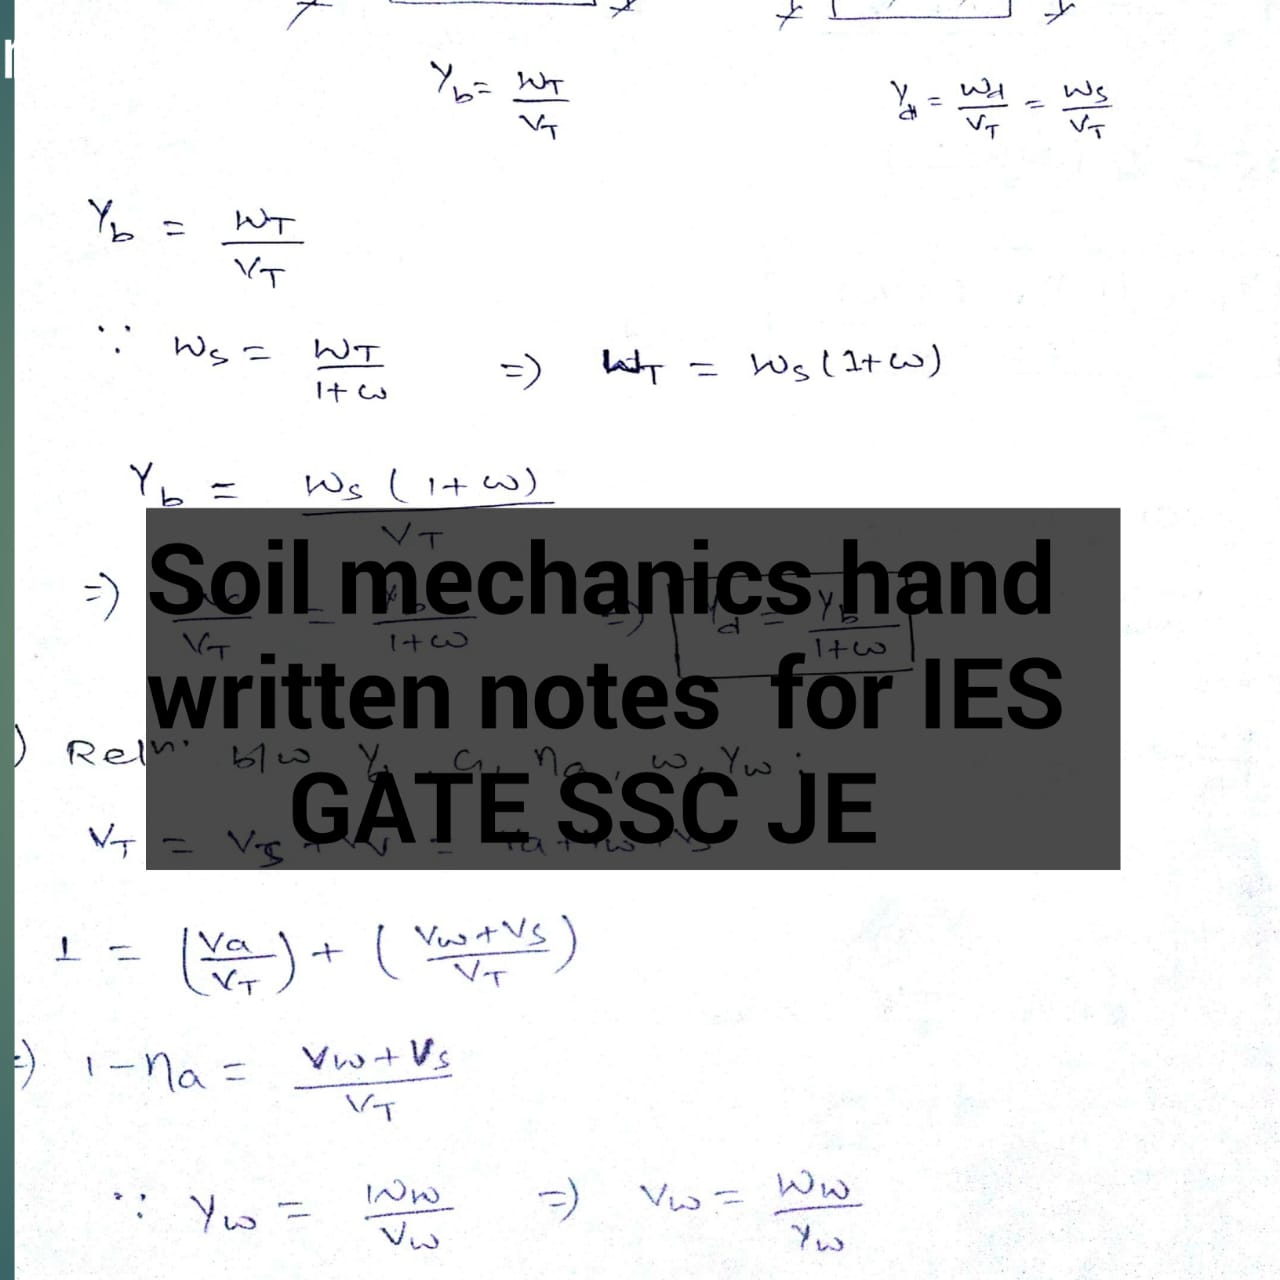 Soil mechanics handwritten notes